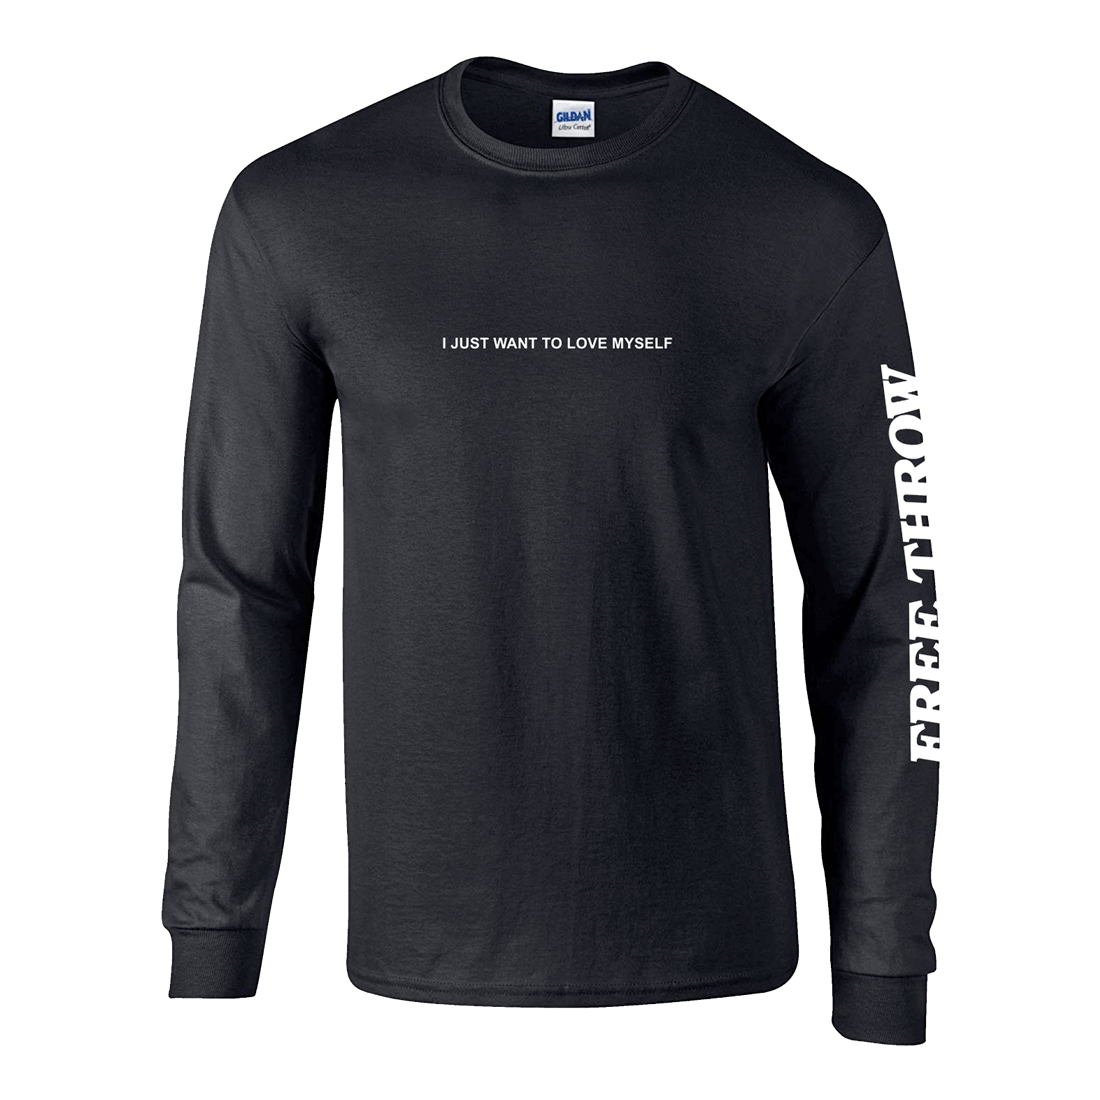 I Just Want To Love Myself Black Long Sleeve Tee